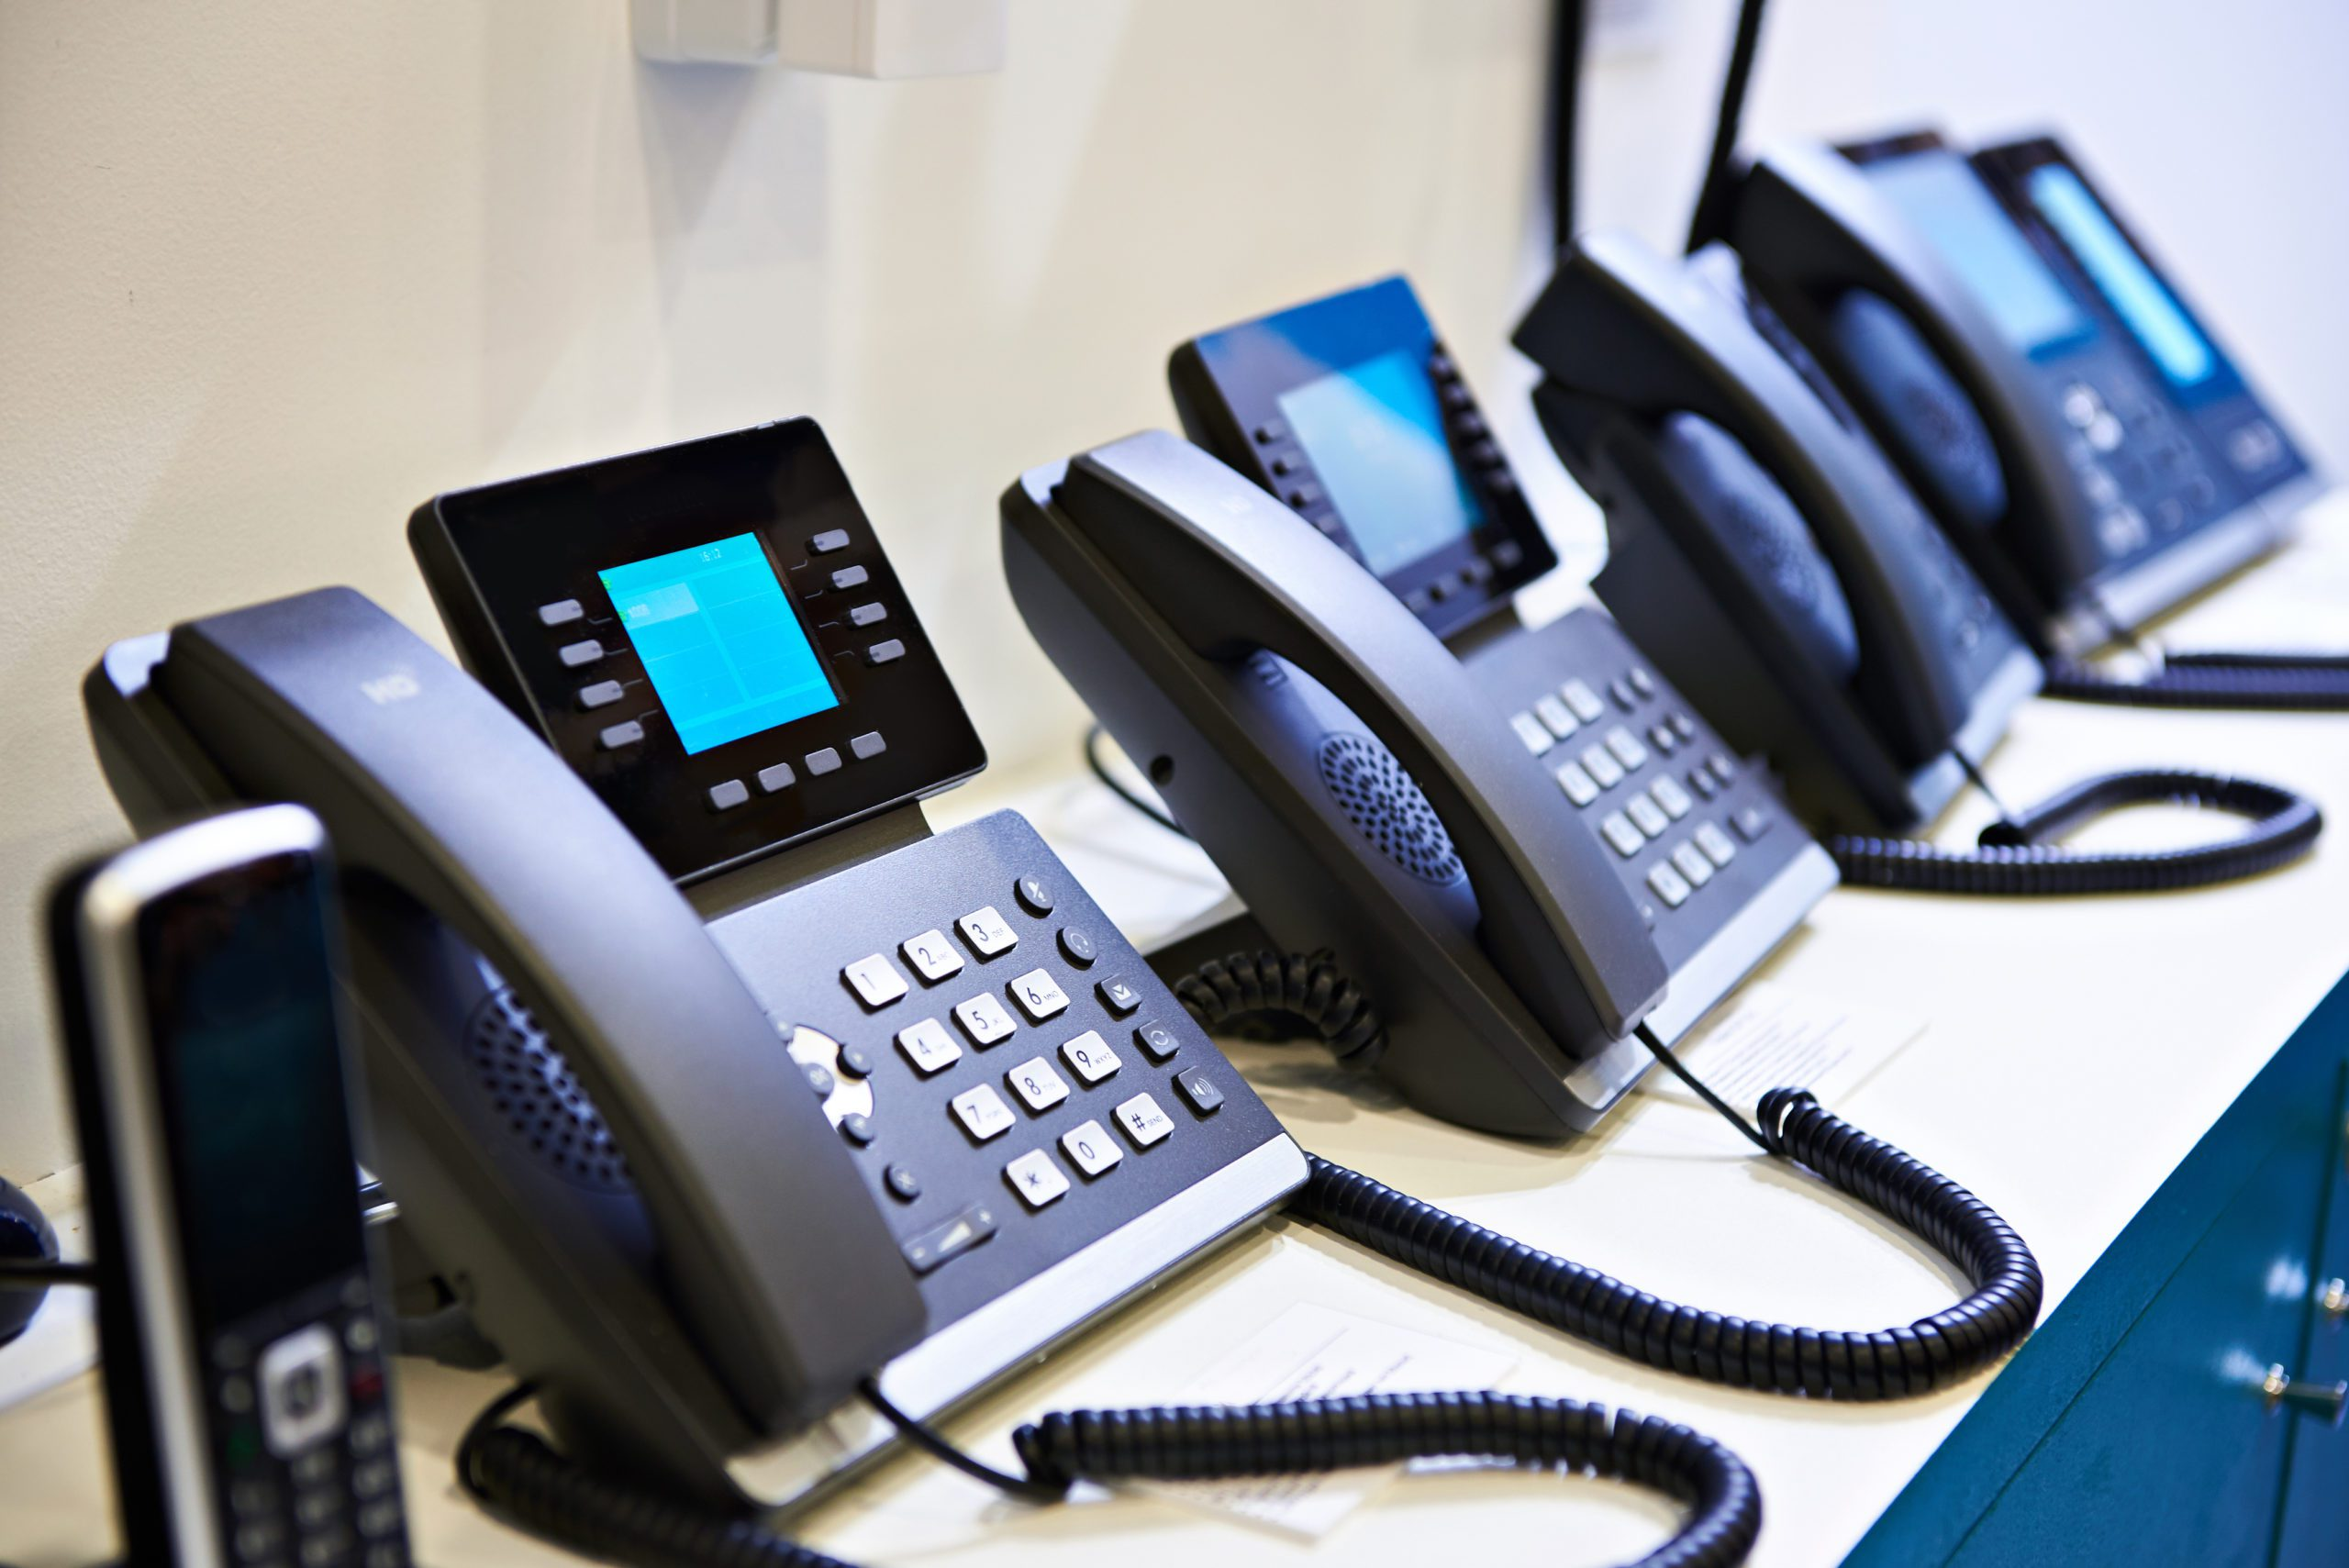 small business VoIP phones